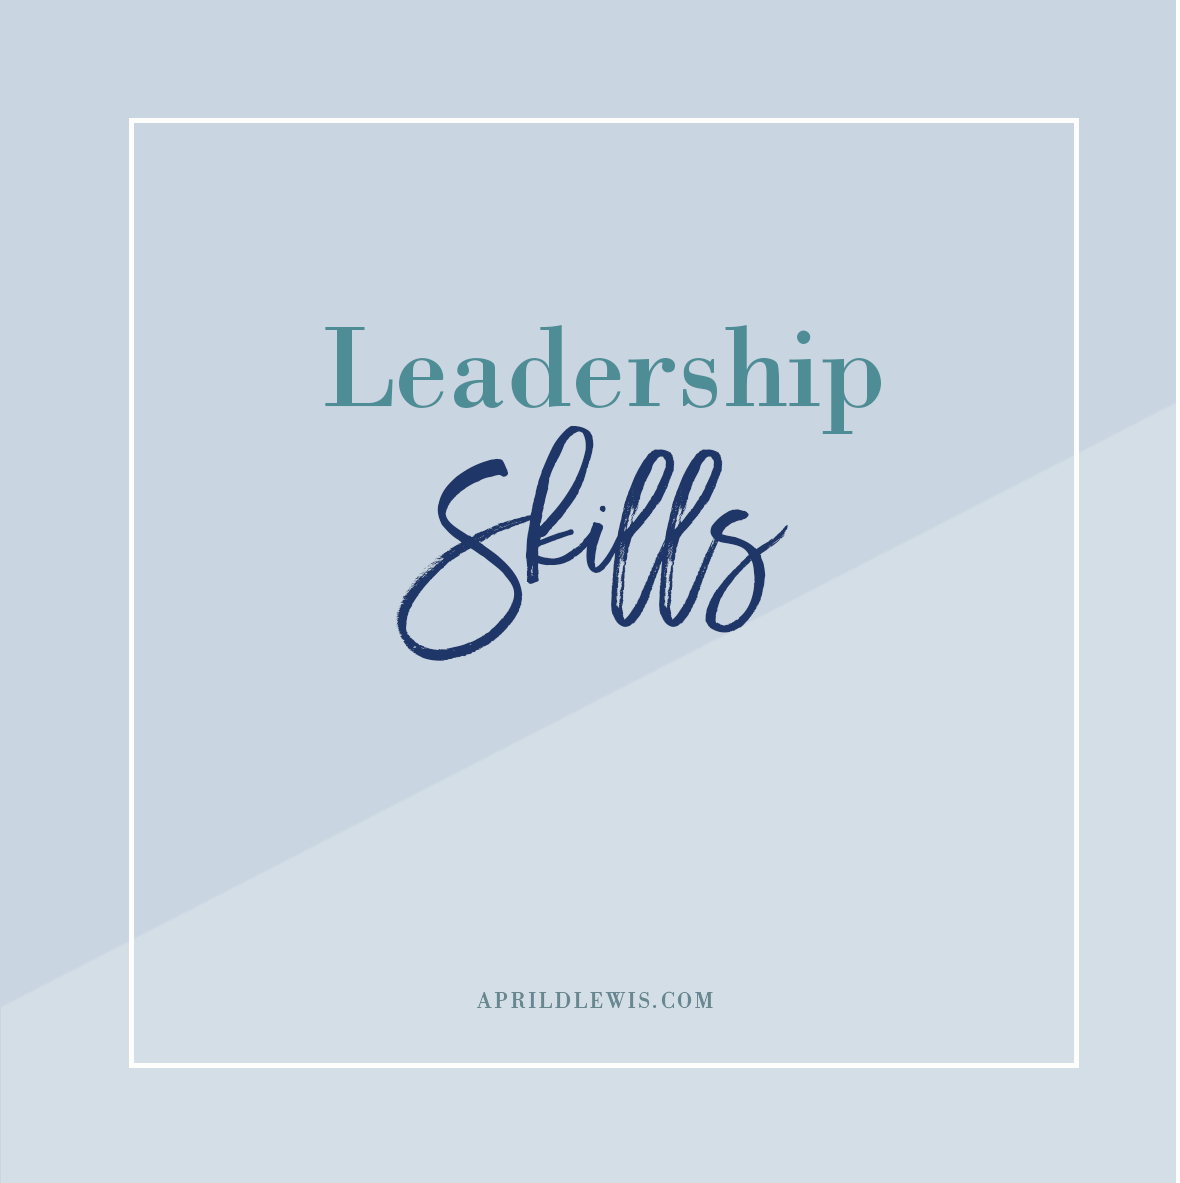 Click here for leadership skills articles